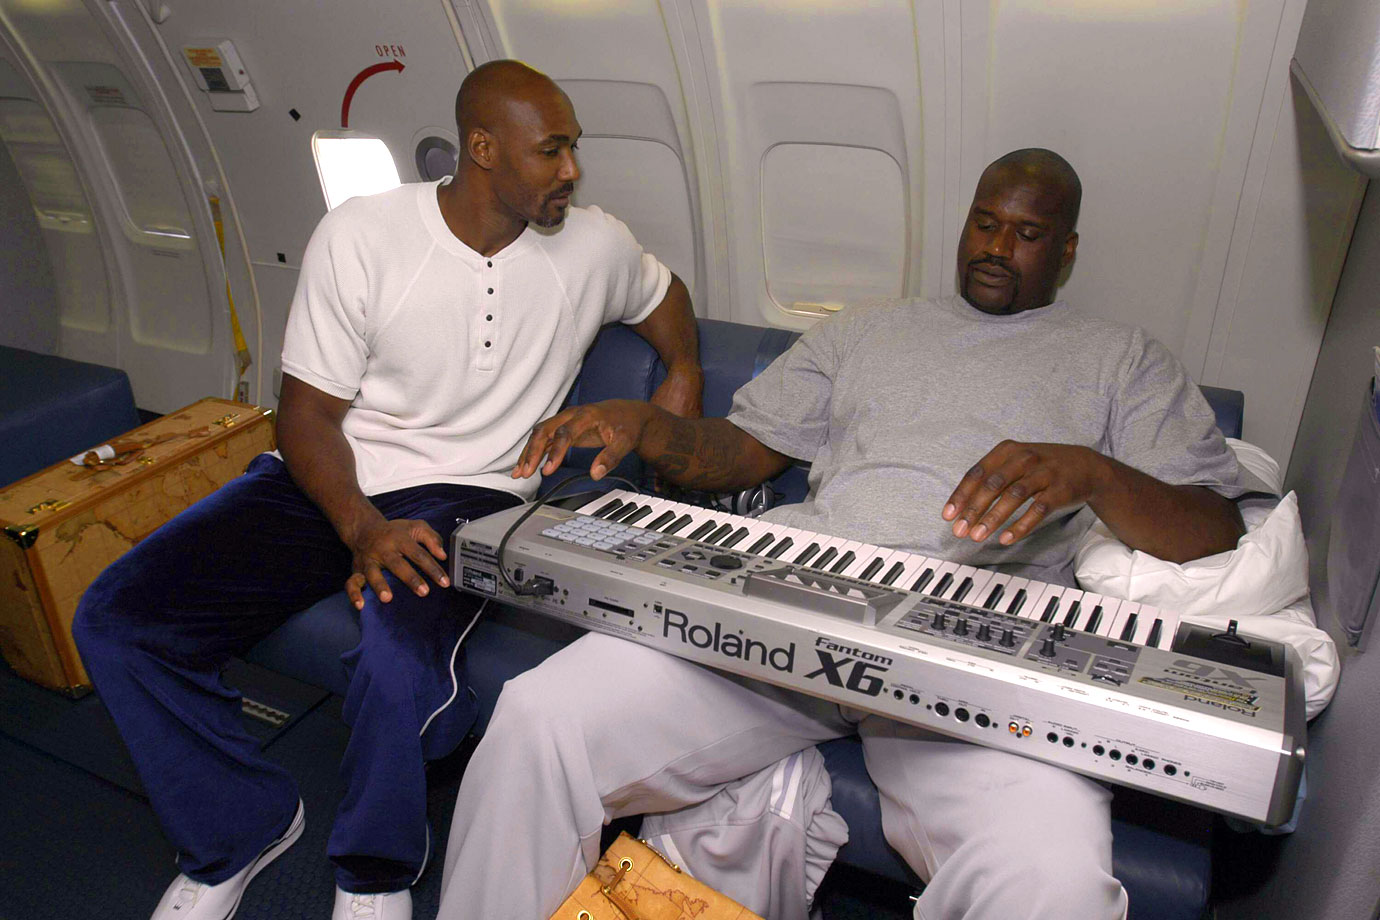 Karl Malone and Shaquille O'Neal work on their music skills during a charter flight from Los Angeles to Detroit for Game 3 of the NBA Finals.